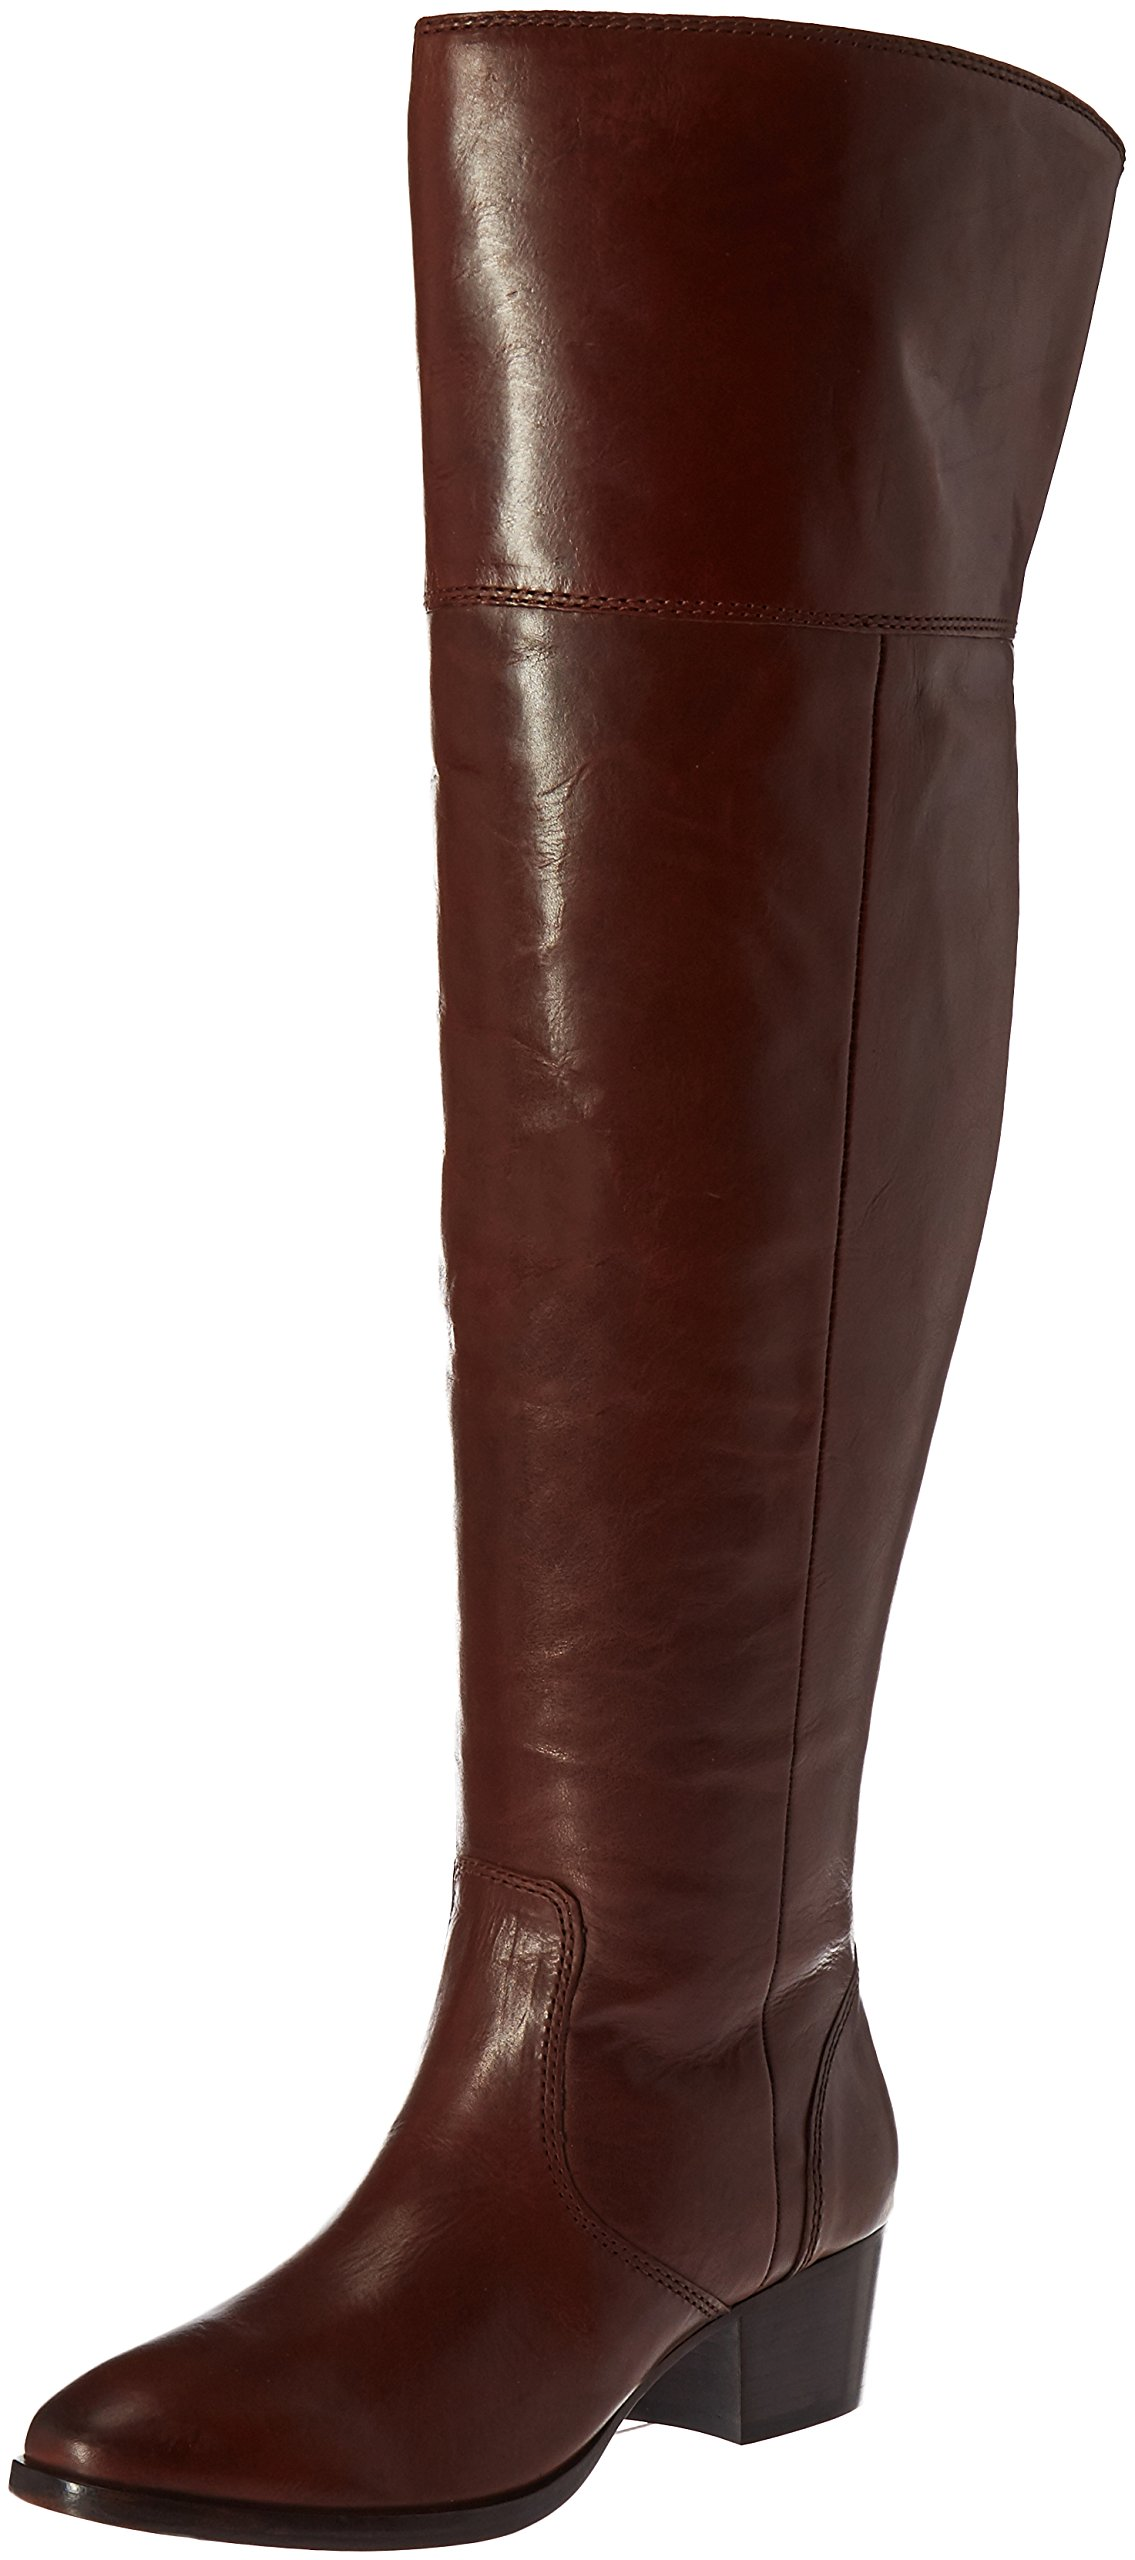 FRYE Women's Clara Otk Leather Slouch Boot, Redwood Extended Calf, 7 M US